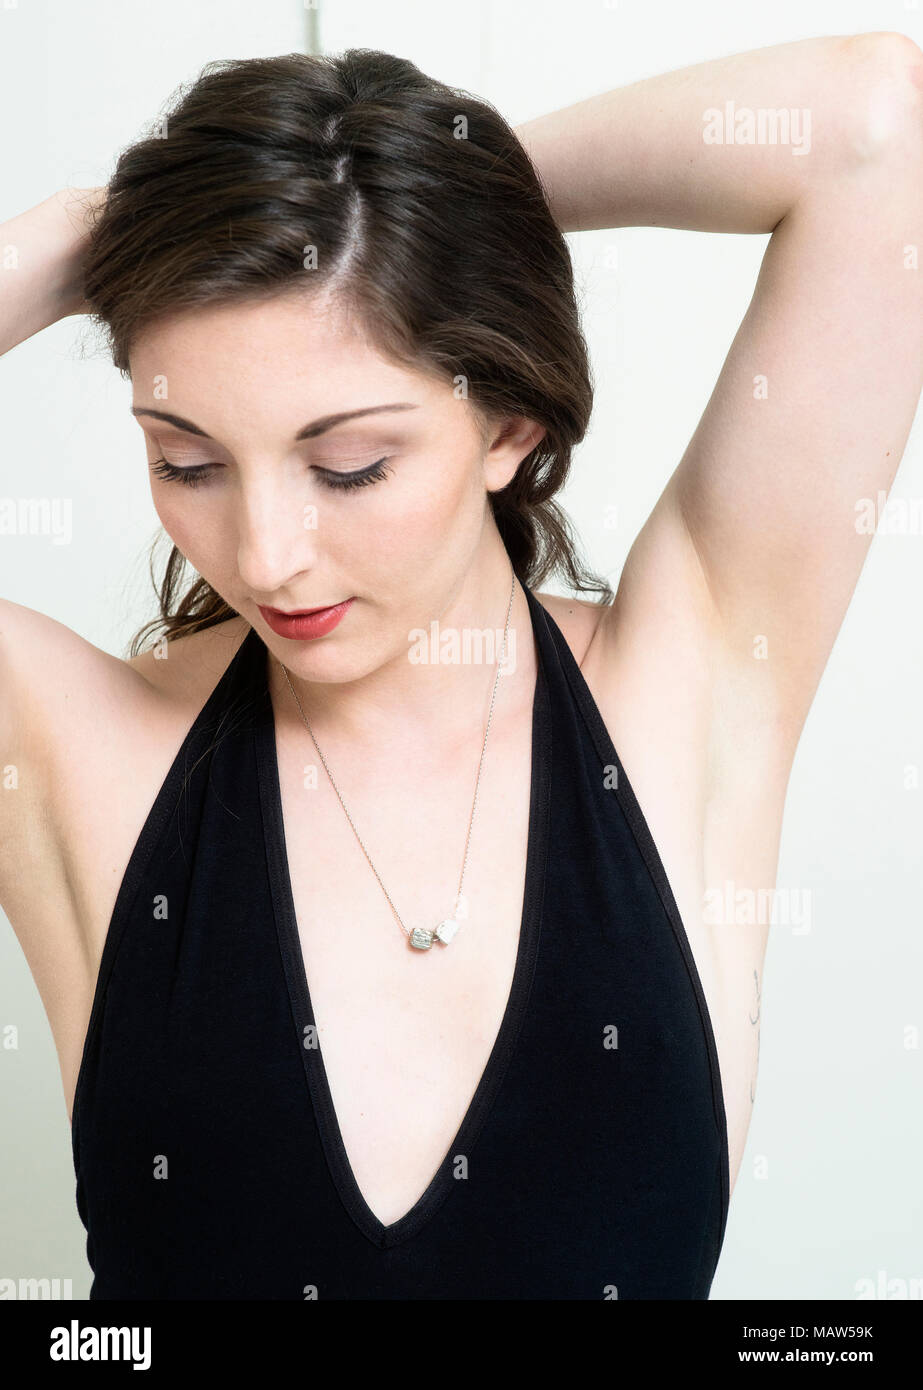 A portrait of a woman wearing a necklace. Stock Photo